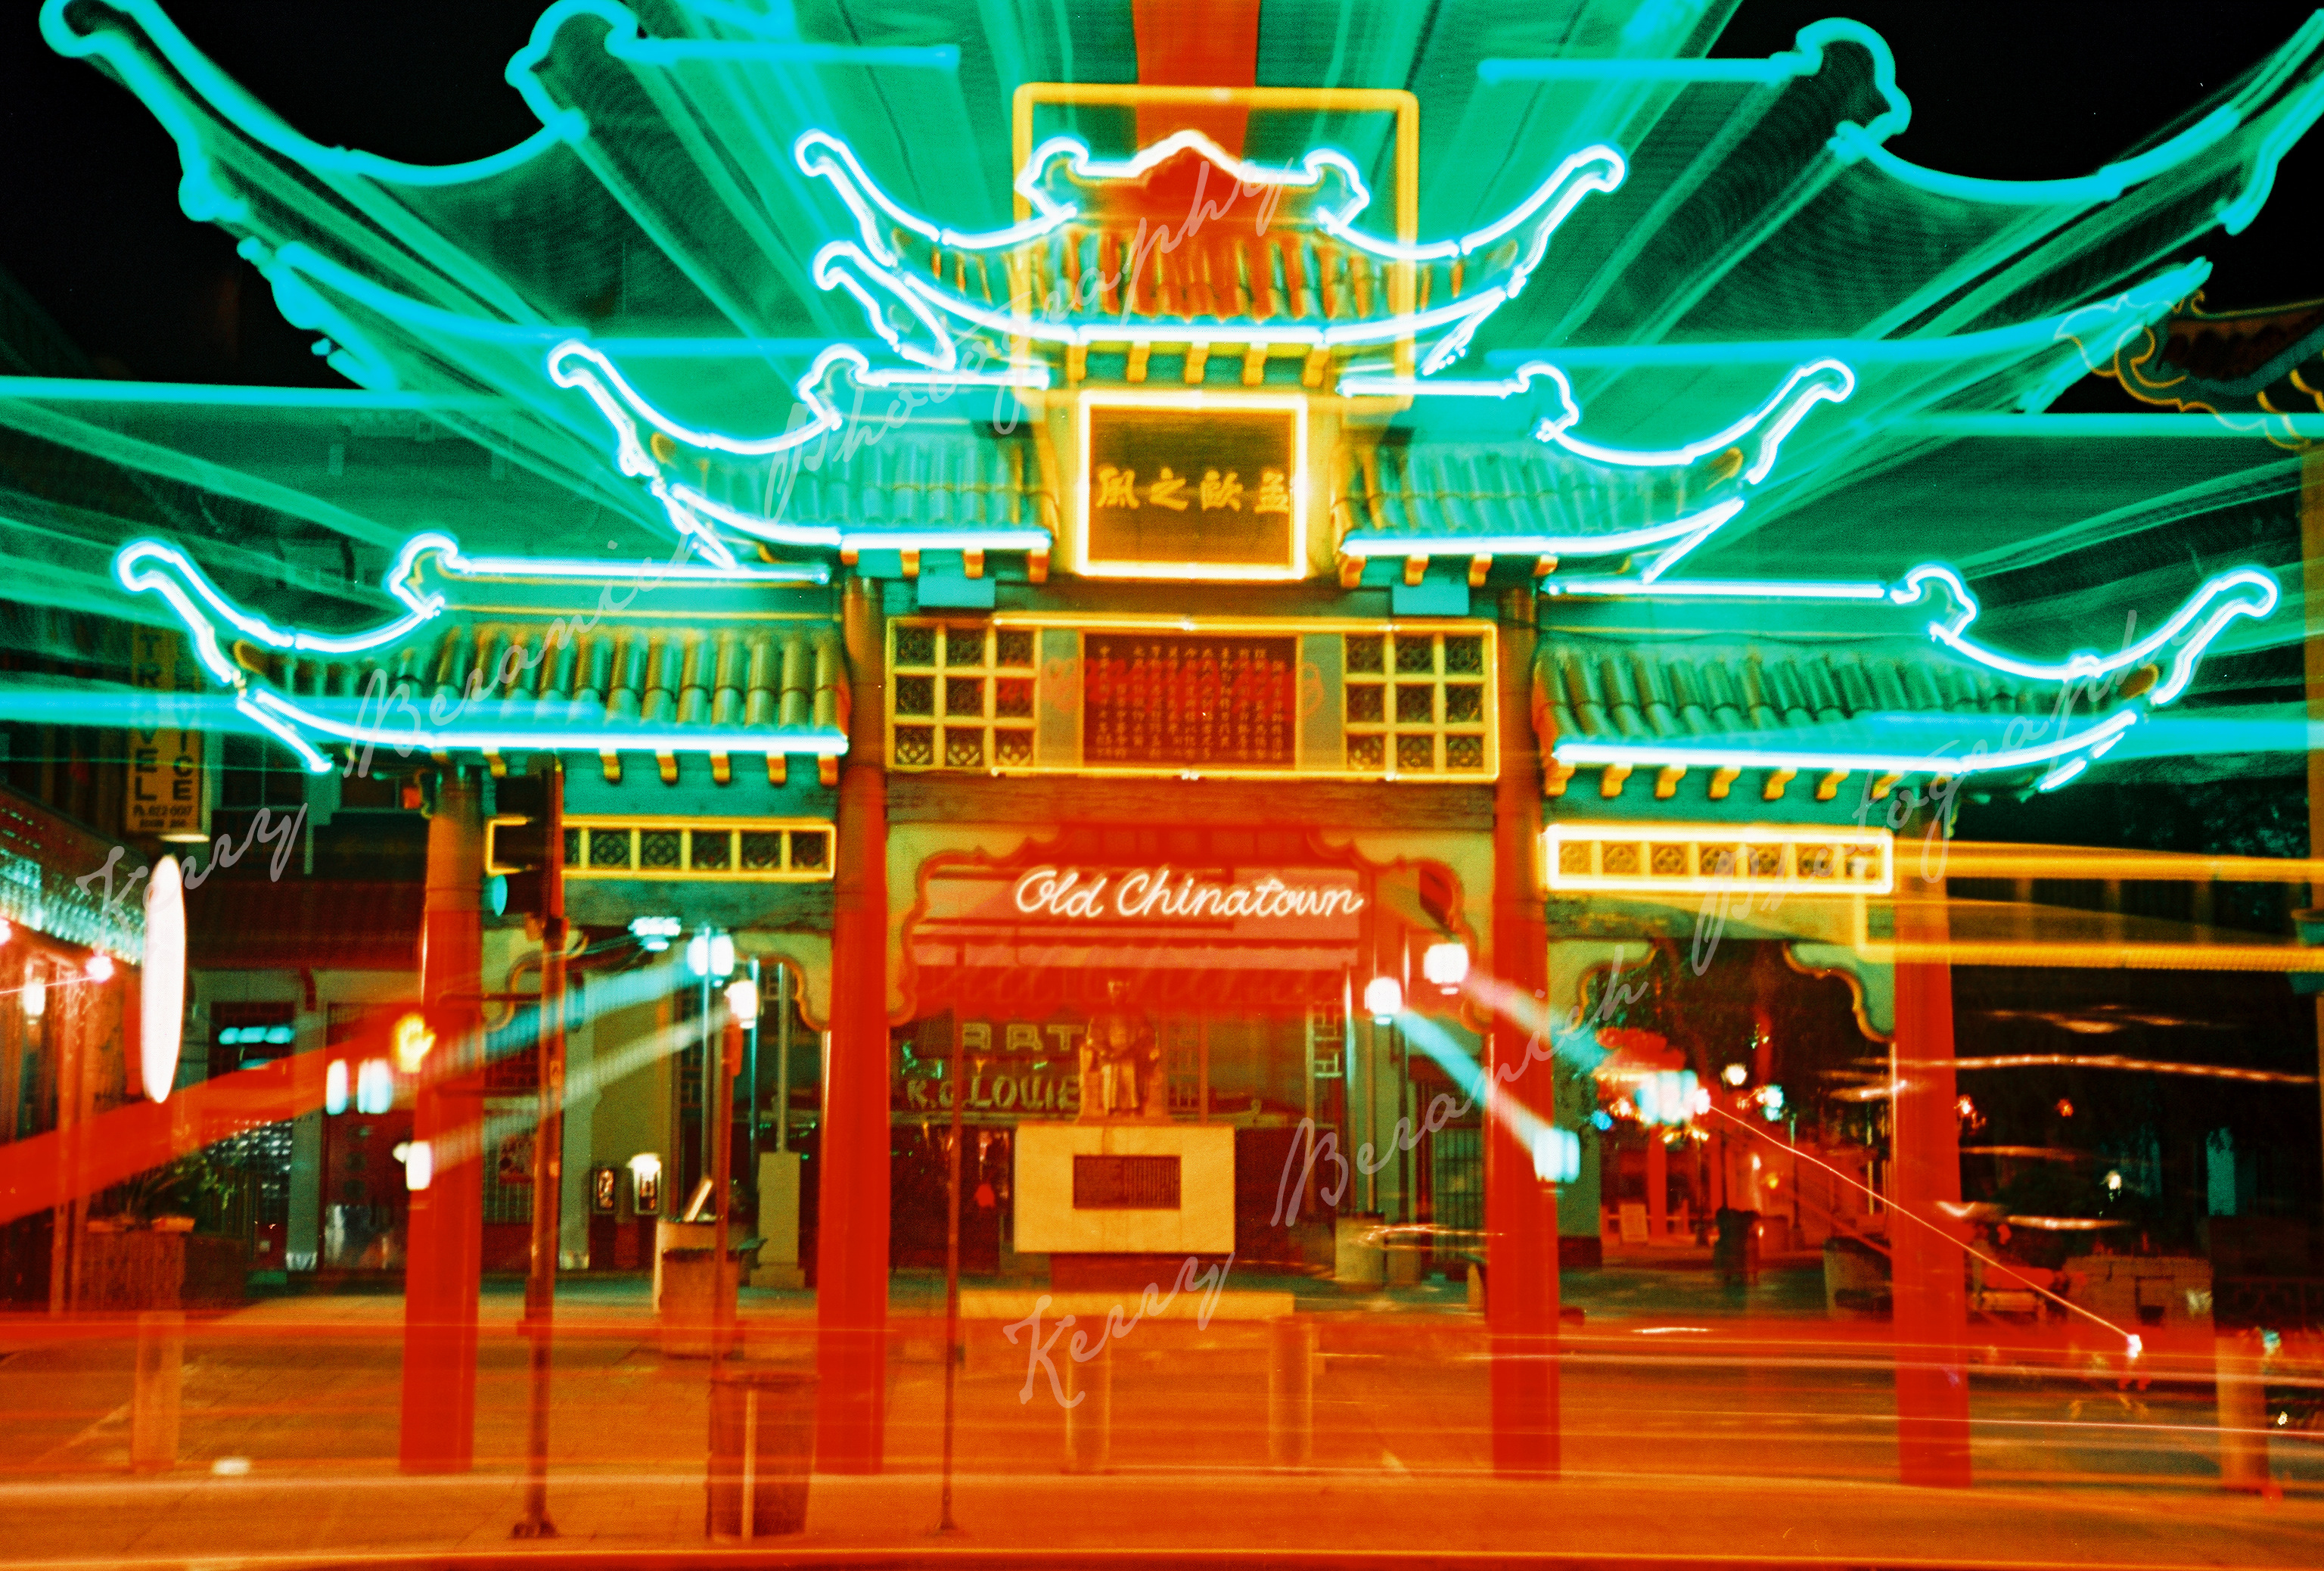 Old Chinatown watermark